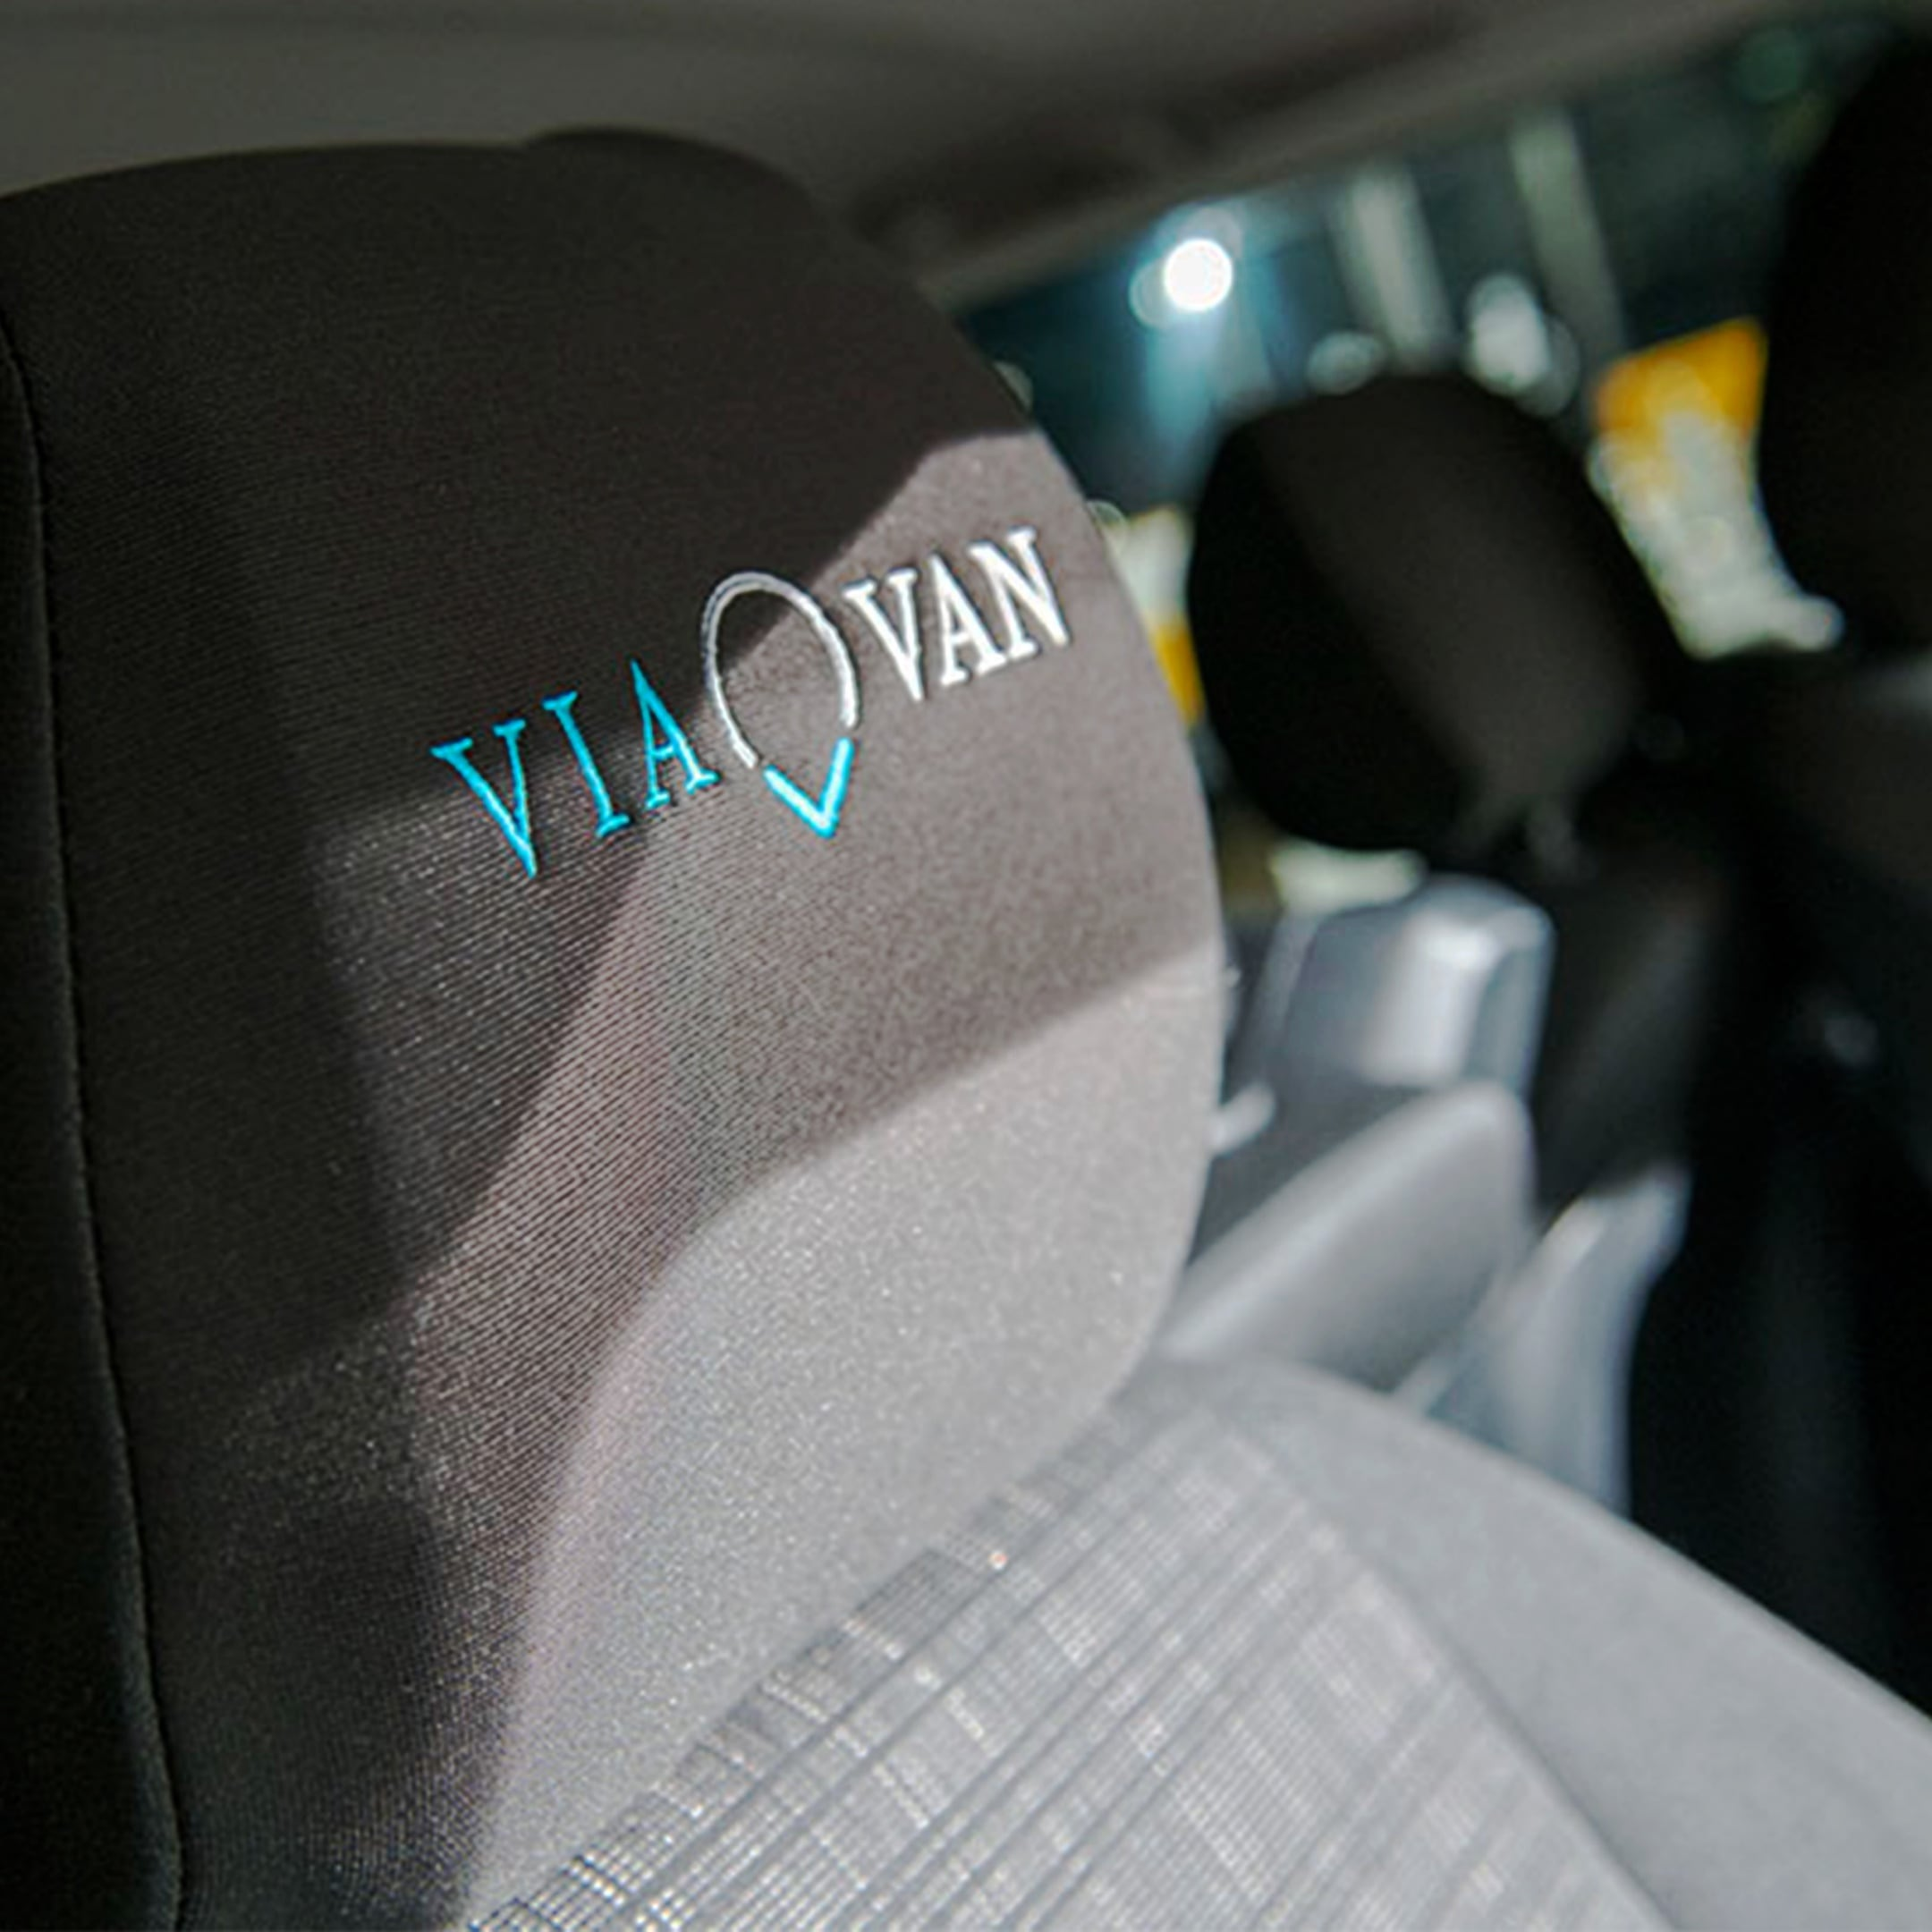 A car seat head restraint embroidered with the ViaVan logo